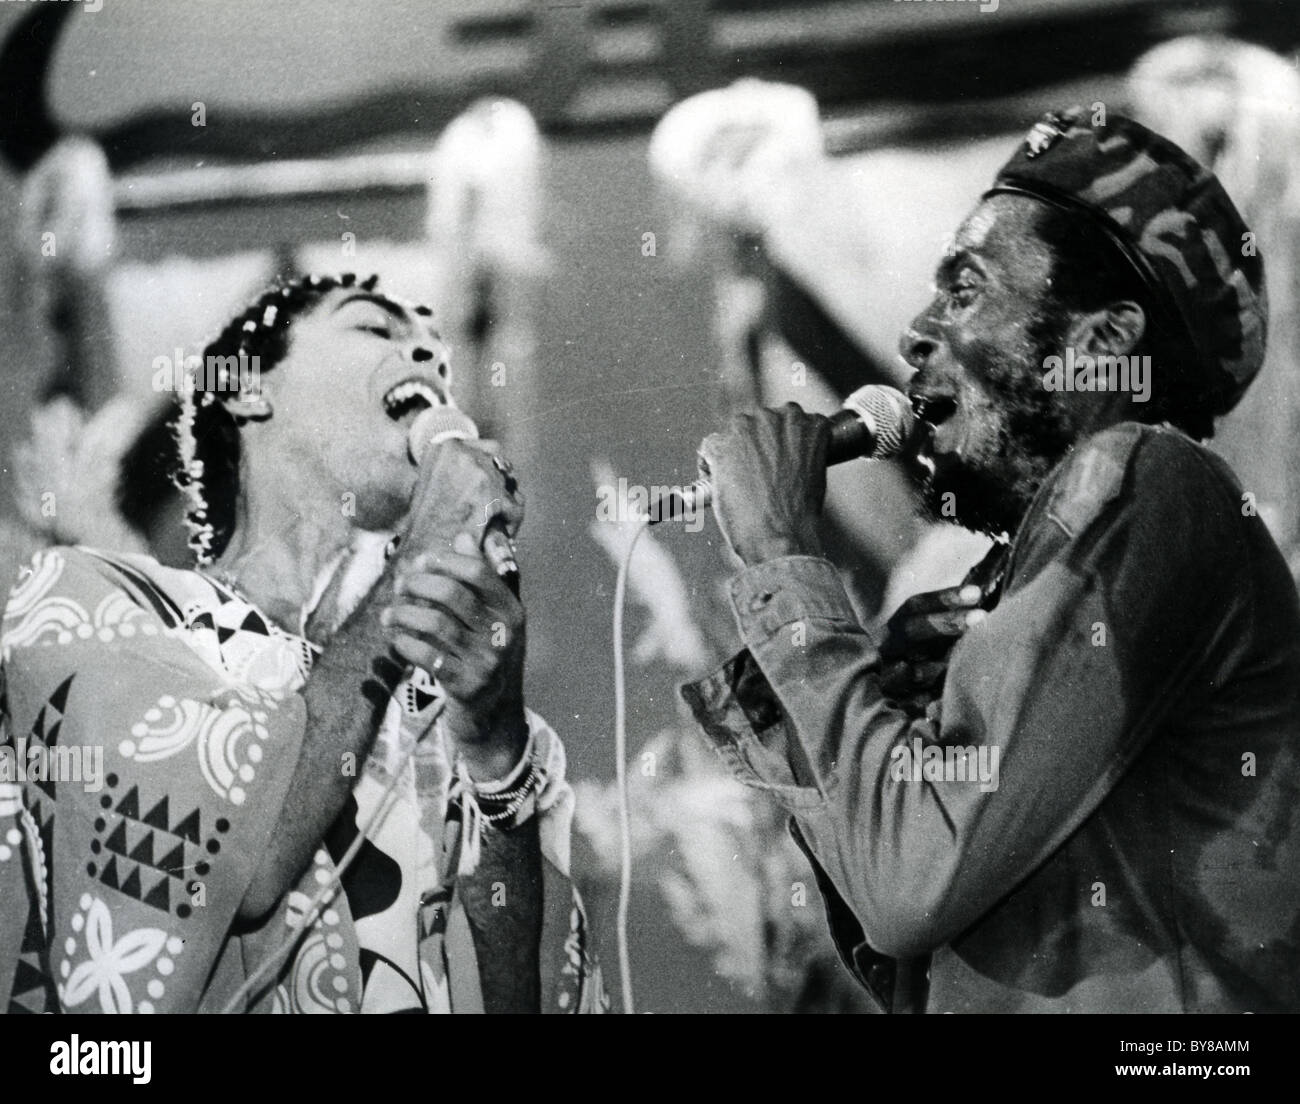 JIMMY CLIFF at right duets with Gilberto Gil about 1980 - Stock Image